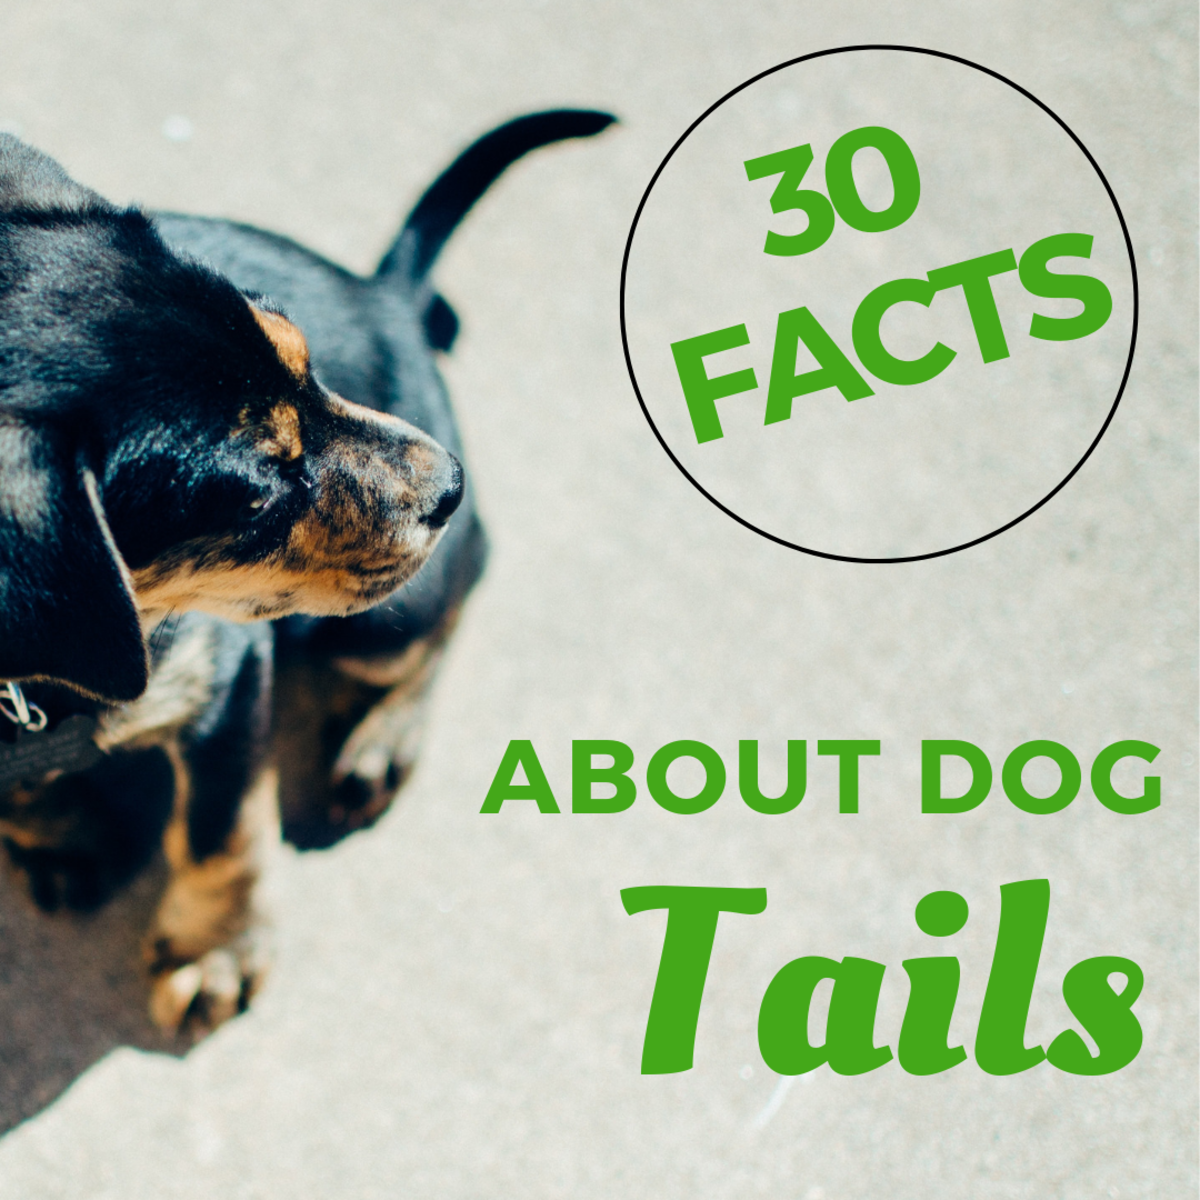 Facts About Dog Tails